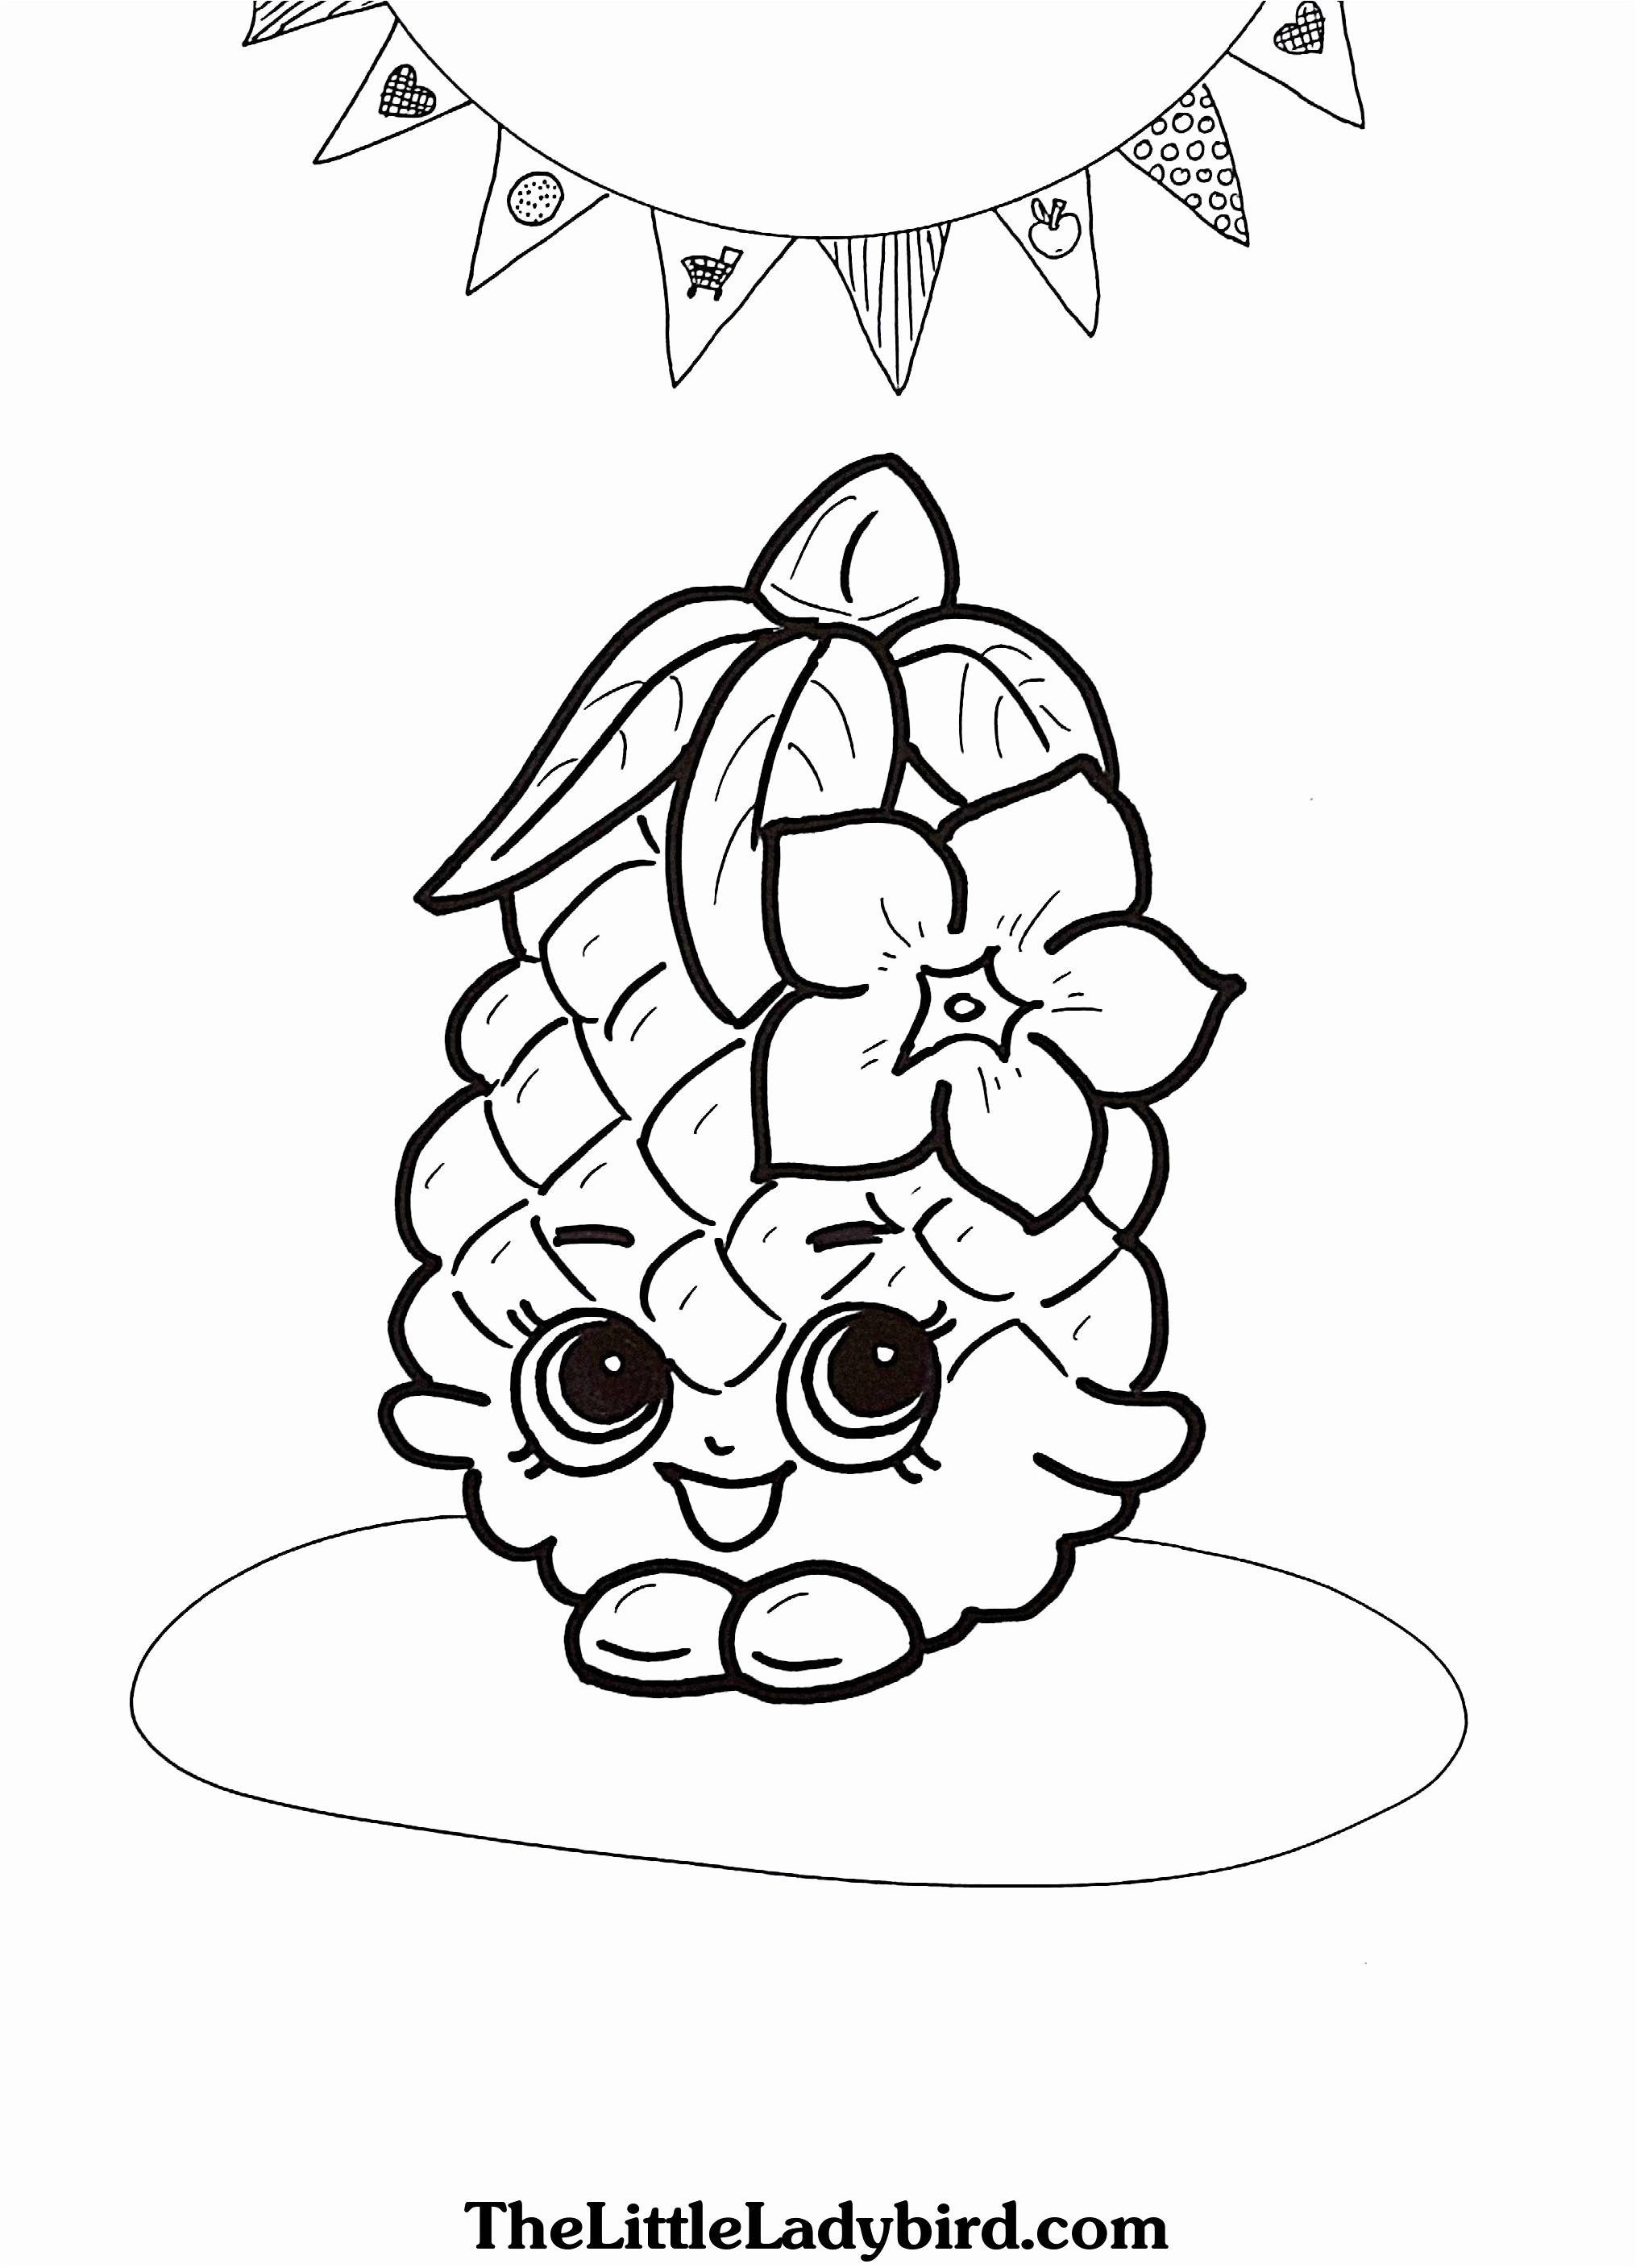 nick coloring pages Download-Coloring Pages Monkey Tree Coloring Book Unique Nick Coloring Page Luxury 18beautiful 9-h